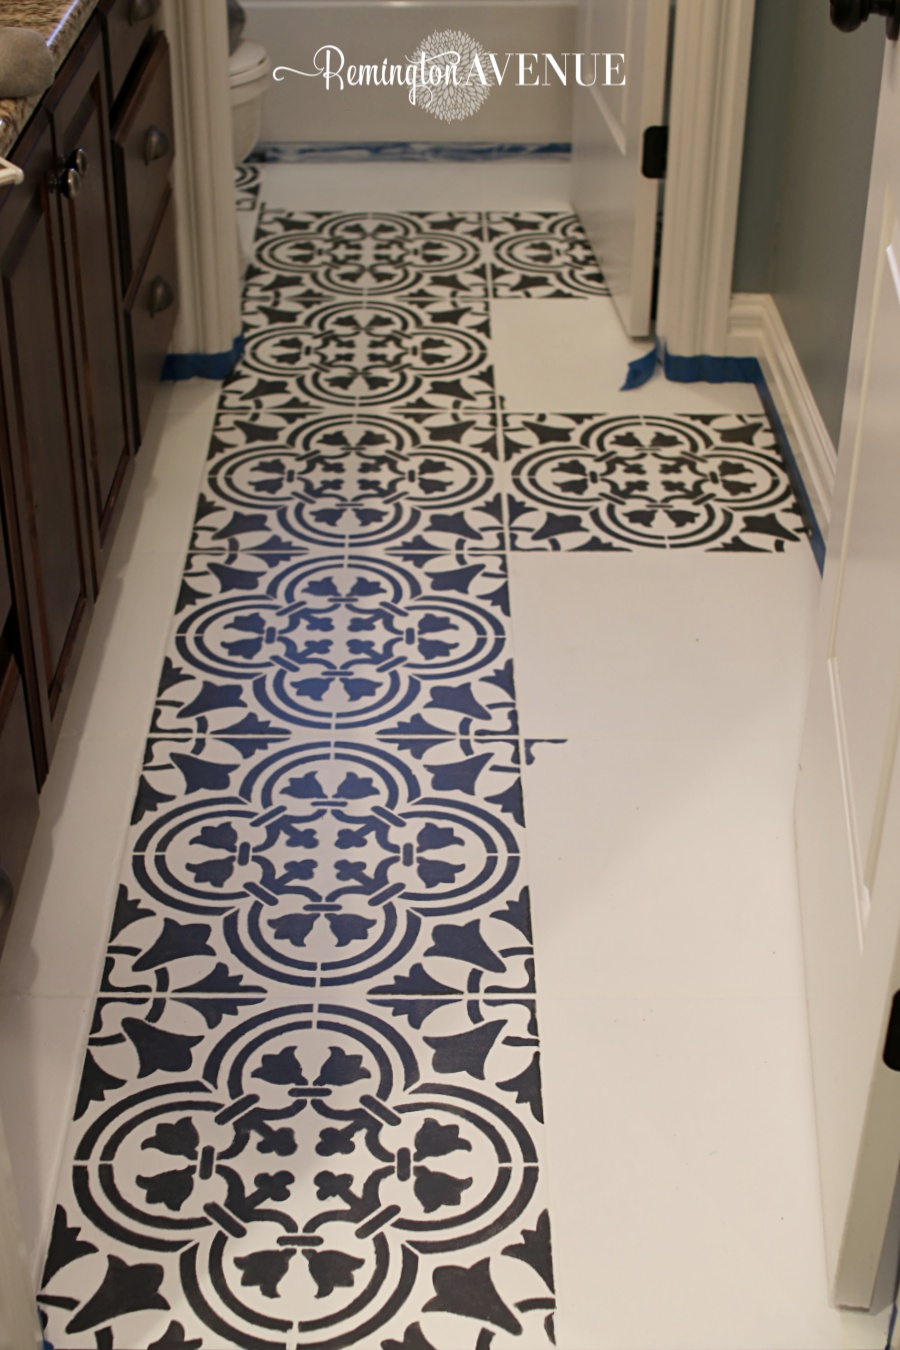 How To Paint Stencil Tile Remington Avenue